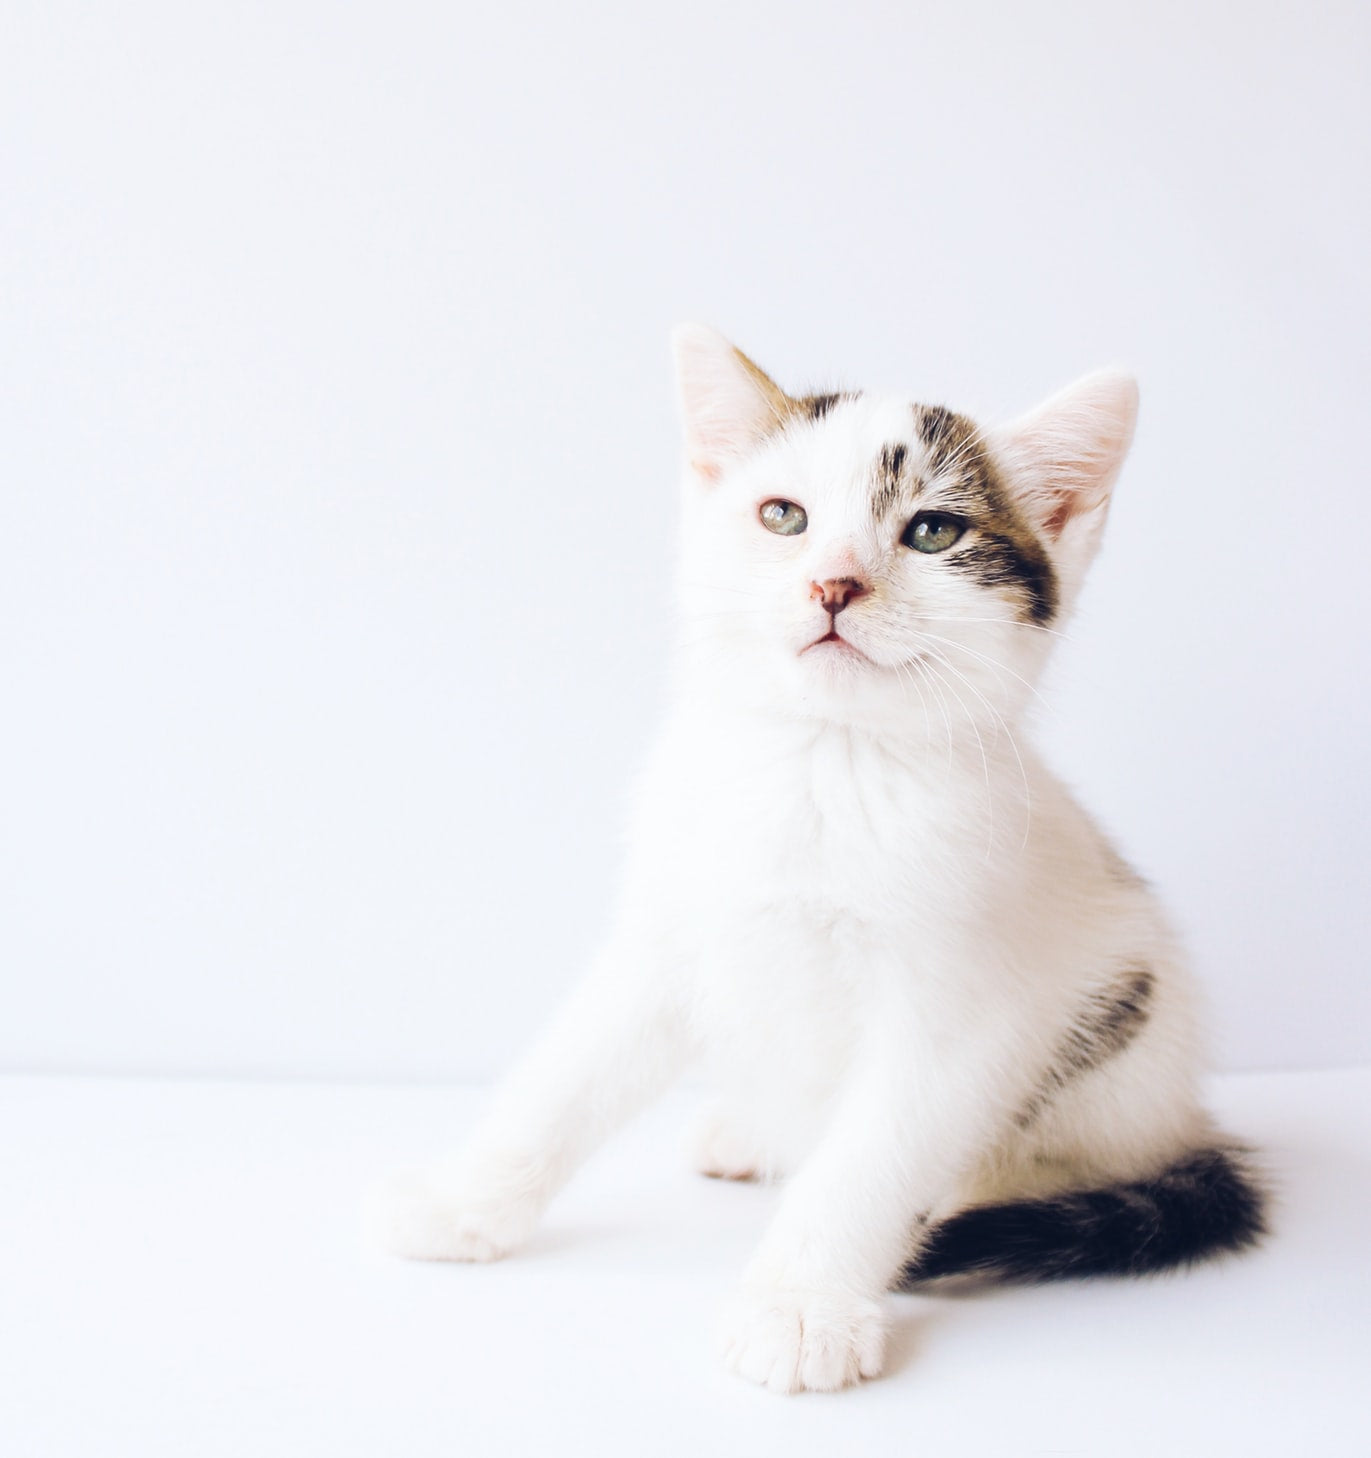 A young white and tabby kitten